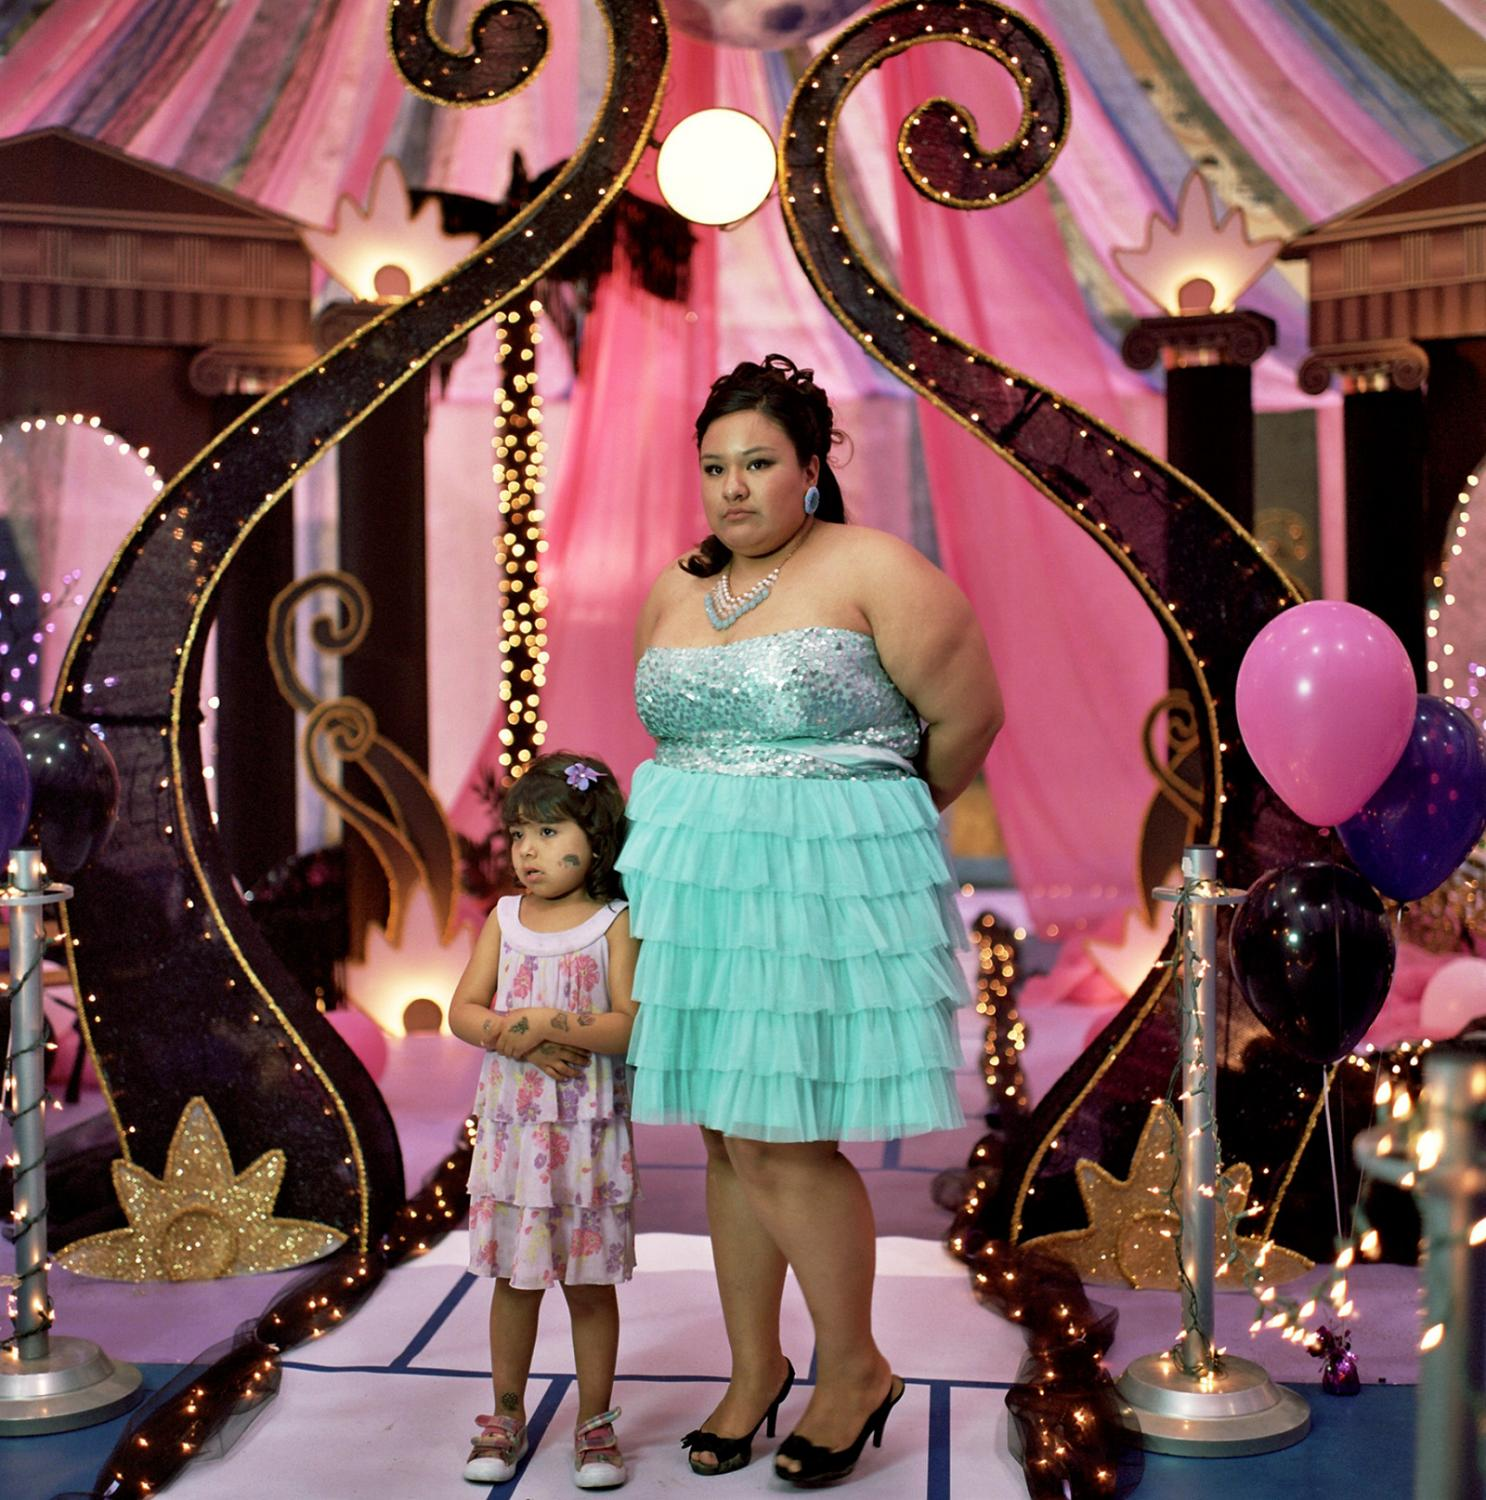 Kara Shaw, 19 years old, posing for her prom picture with her daughter Lillian Shaw, 4 years old, at the prom night in Four Winds high school. Teen pregancies are common on Spirit Lake. Fort Totten, Spirit Lake Reservation, North Dakota, USA. April, 2013